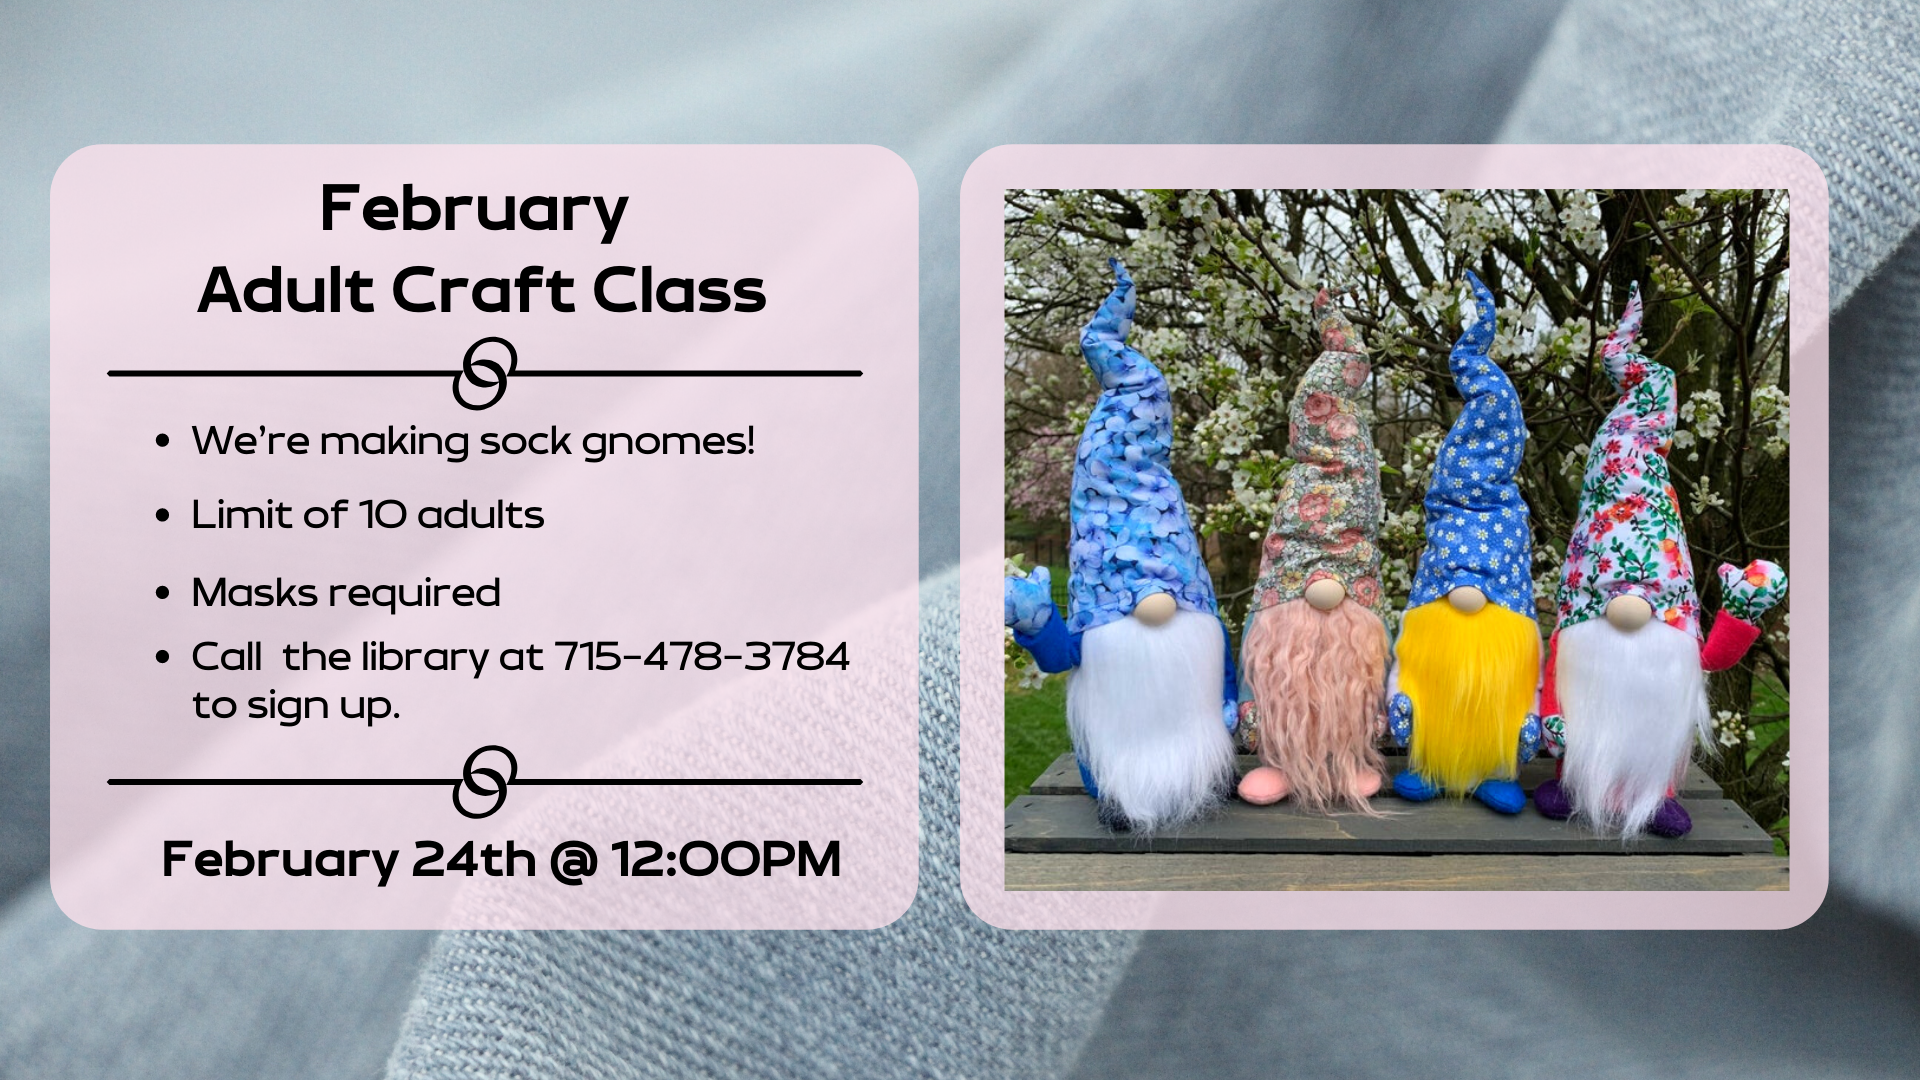 February 24th, 2021 at 12 noon. Adult Craft Class. Gnomes